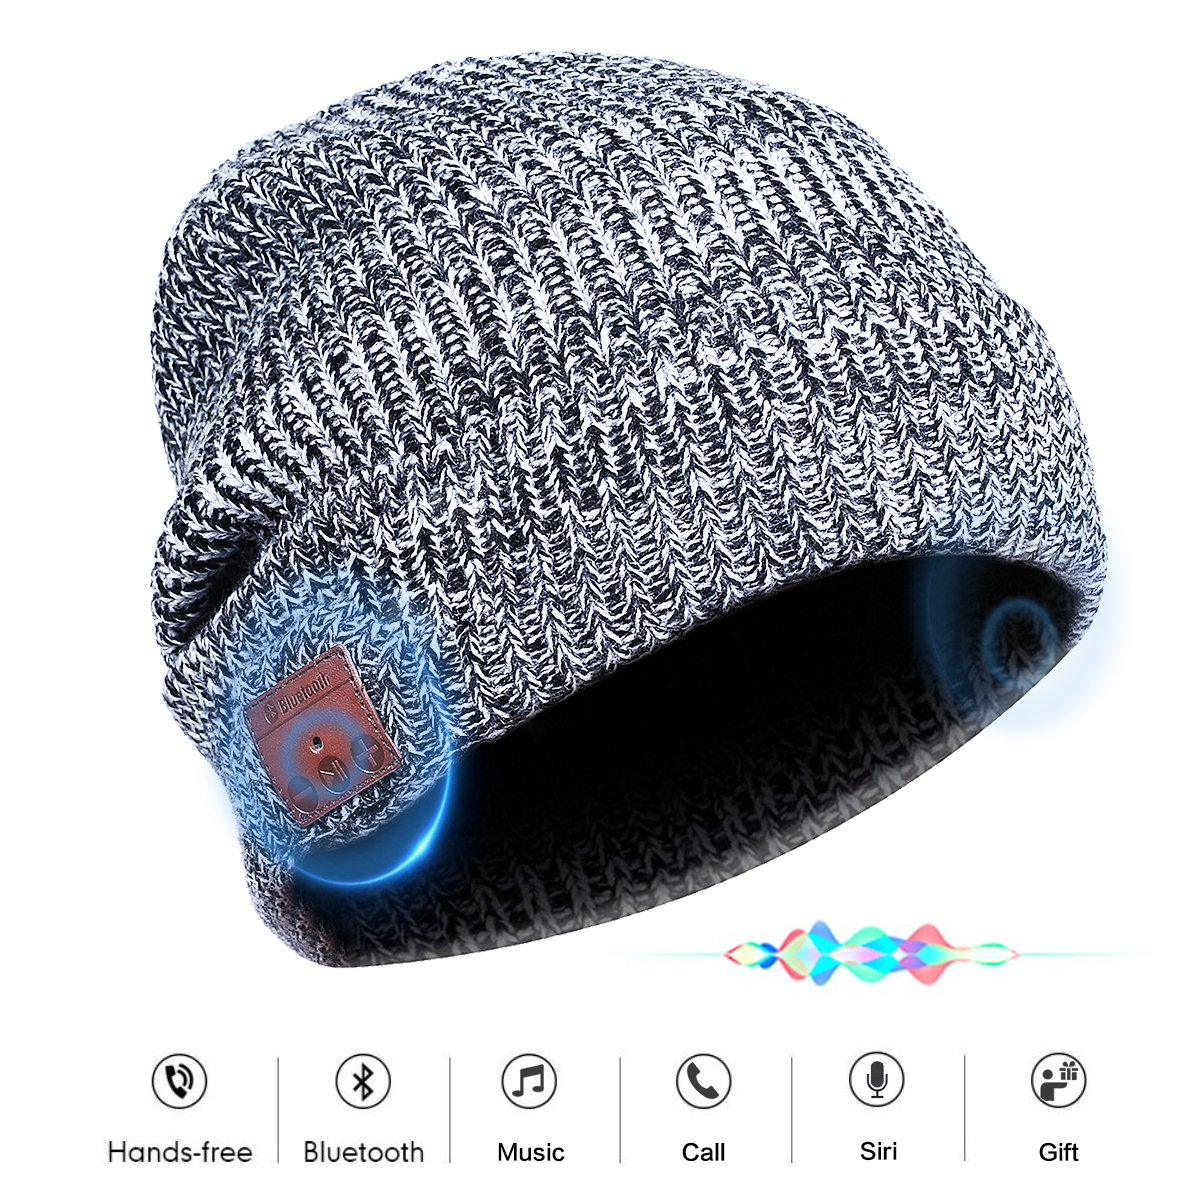 Bluetooth Beanie Hat Headphones Headset, Wireless 4.1 Siri Voice Control Built-in HD Stereo Speakers & Microphone, Musical Knit Cap for Running, Outdoor Sports, Boys Girls Christmas Gifts(Gray) VOUO 008